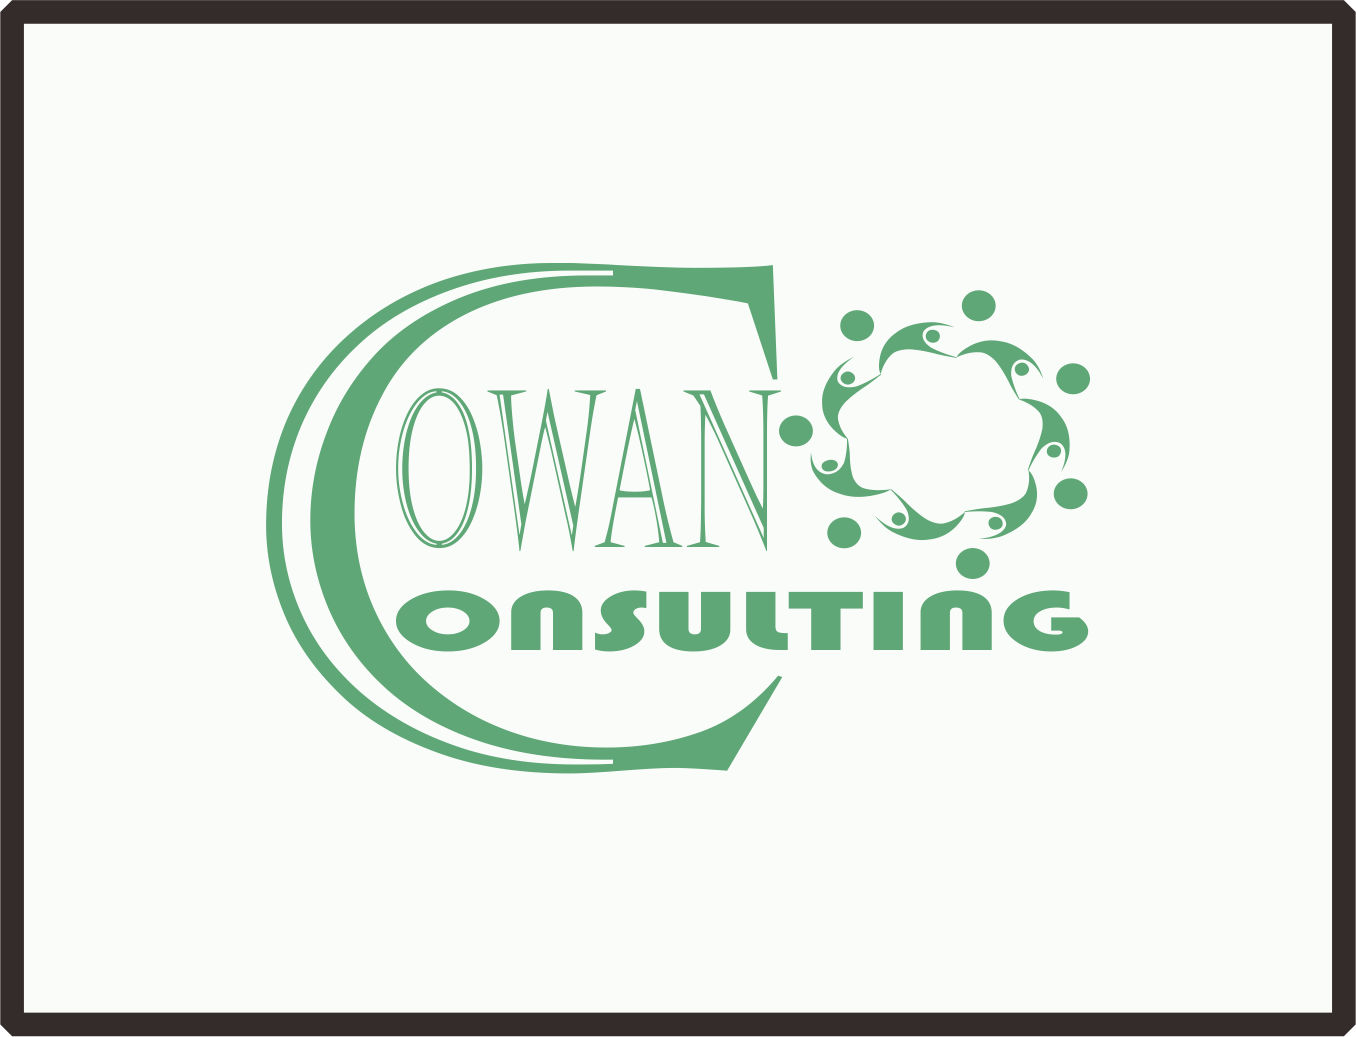 Logo Design by Teguh Hanuraga - Entry No. 18 in the Logo Design Contest Fun Logo Design for Cowan Environmental Consulting.